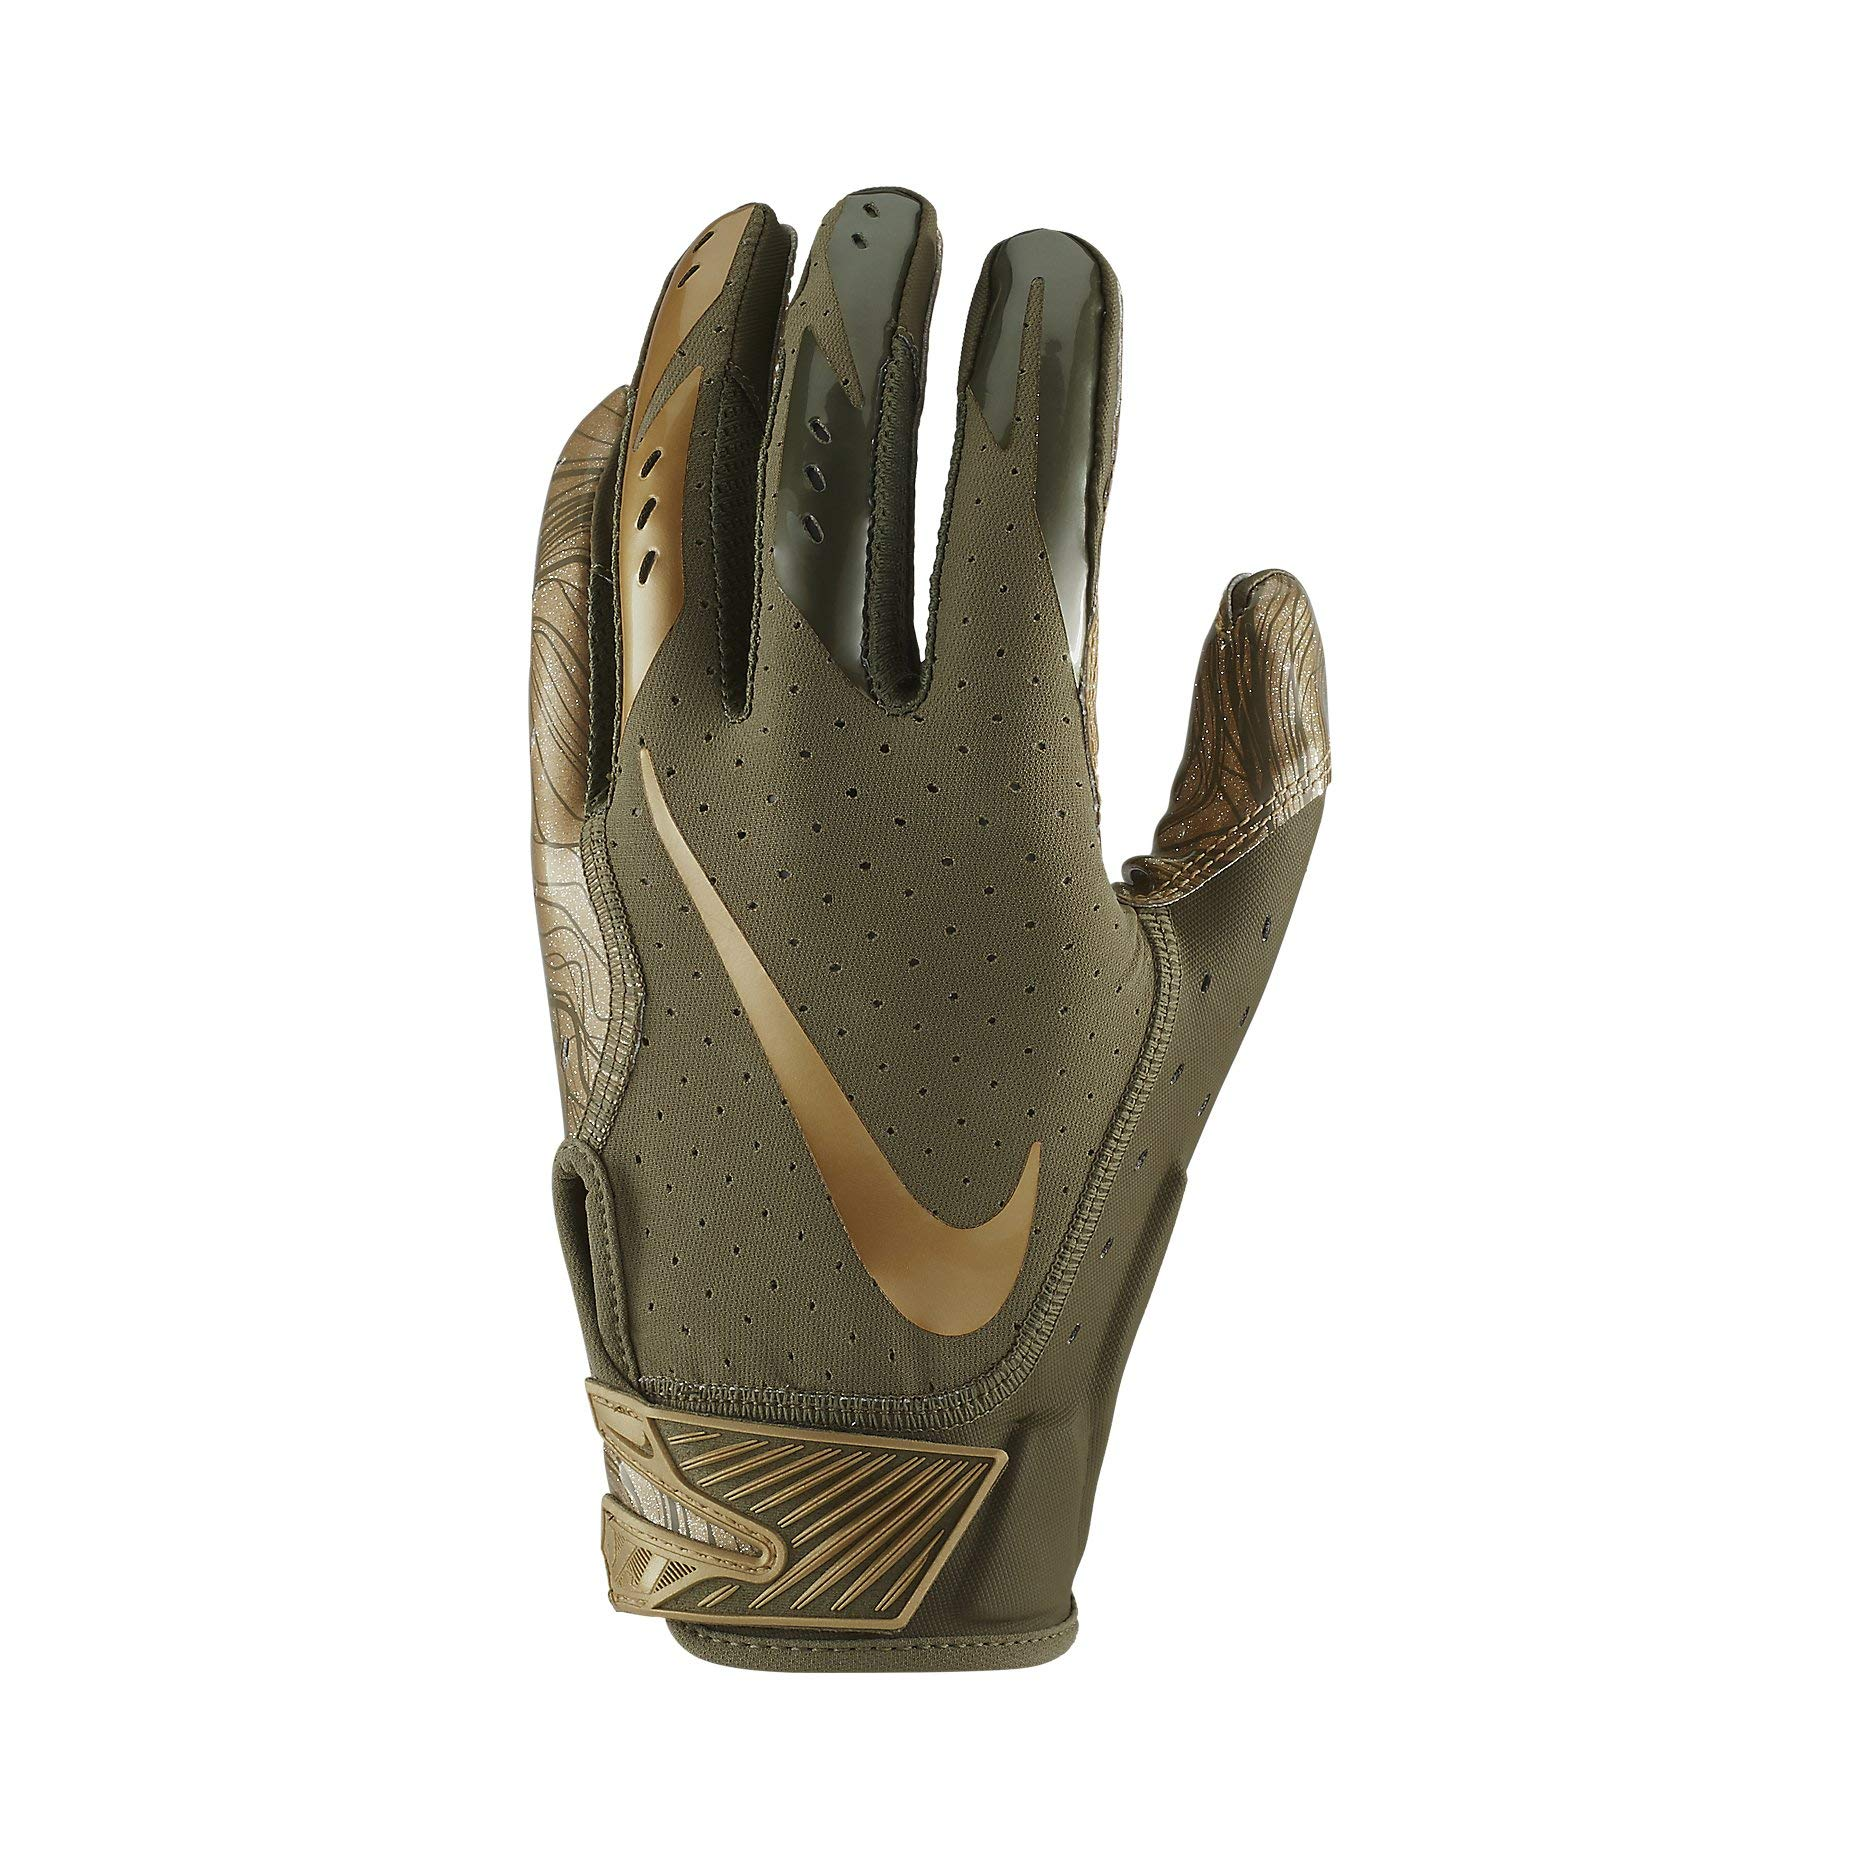 Nike Adult Vapor Jet 5.0 Receiver Gloves 2018 (Olive/Gold, Small)